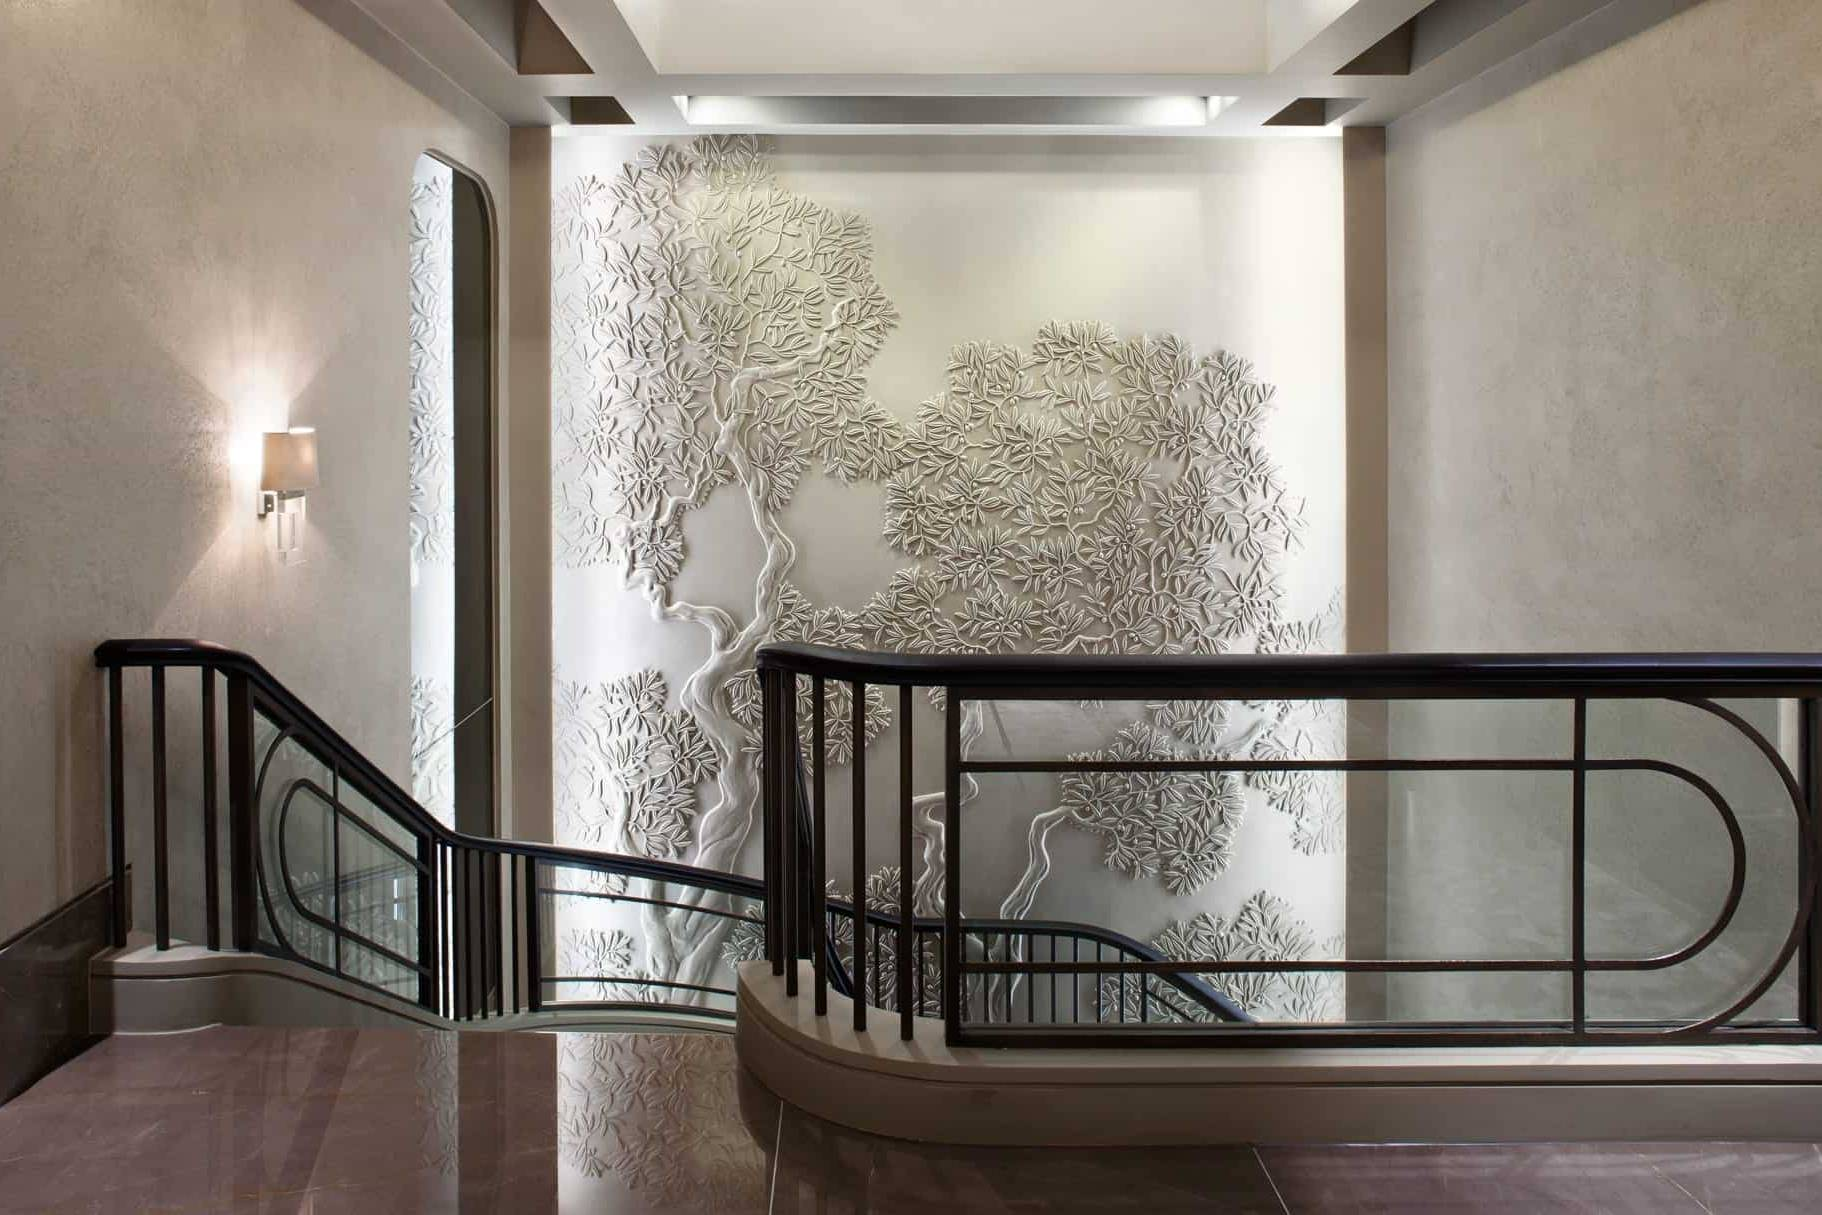 Olive tree bas-relief in residential stairwell area